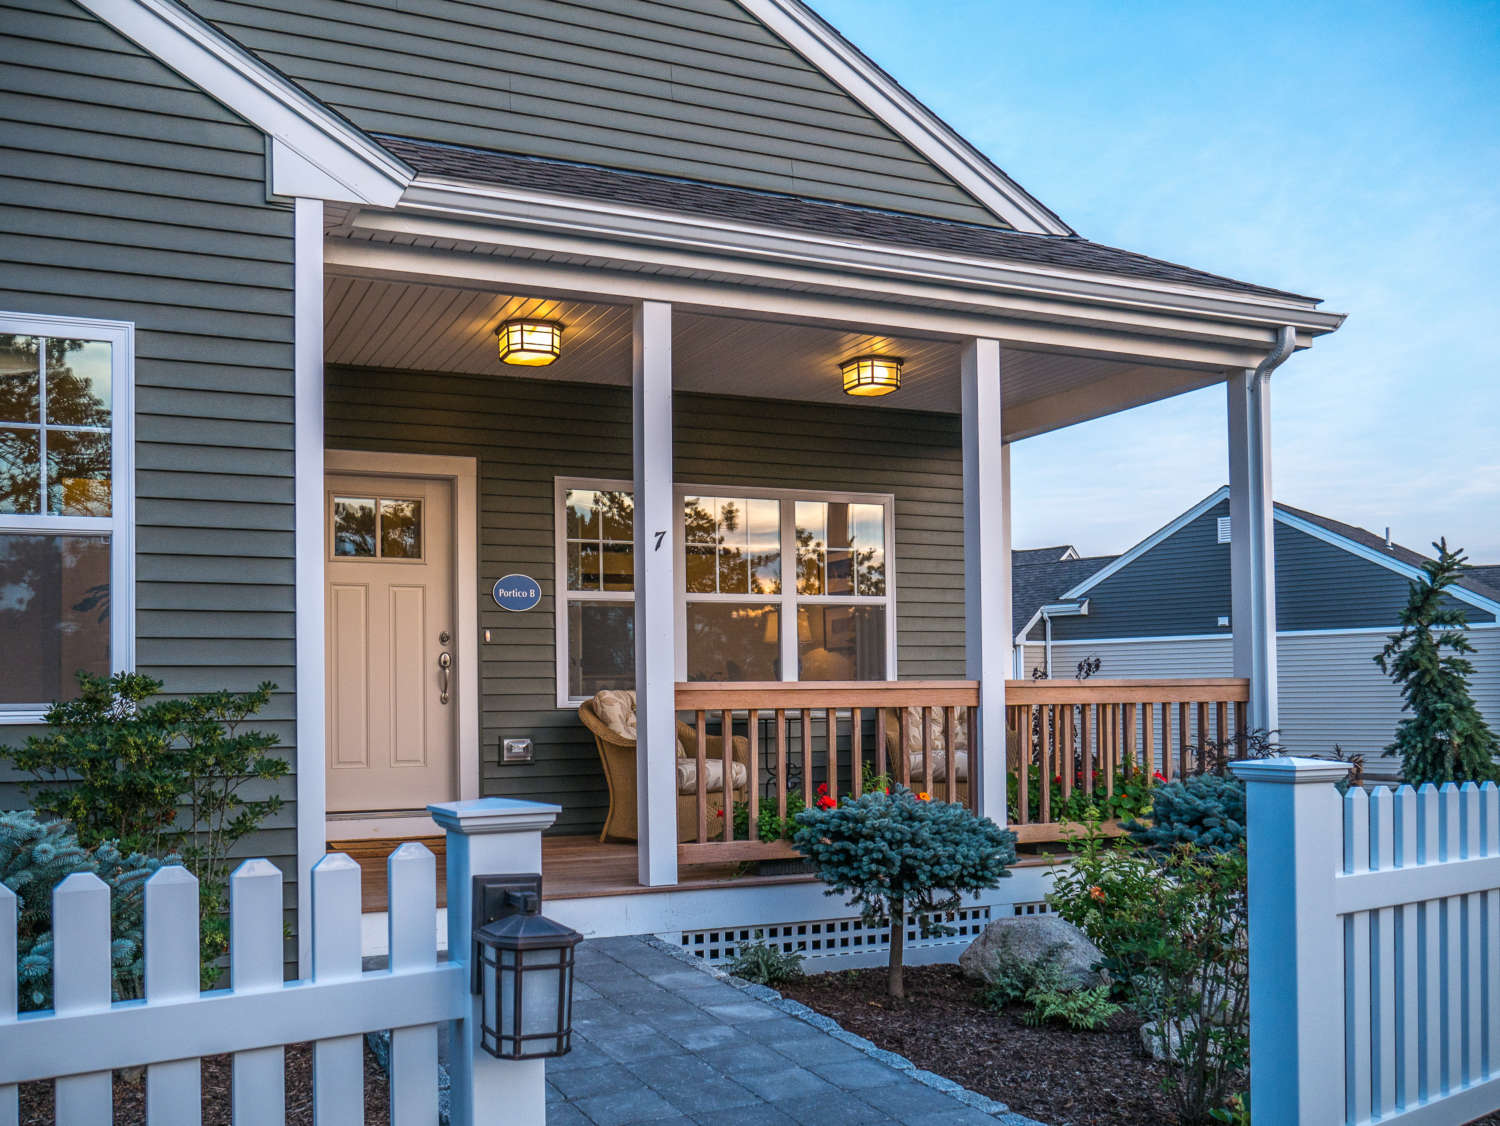 Whitman Homes Attached Single Family Townhome